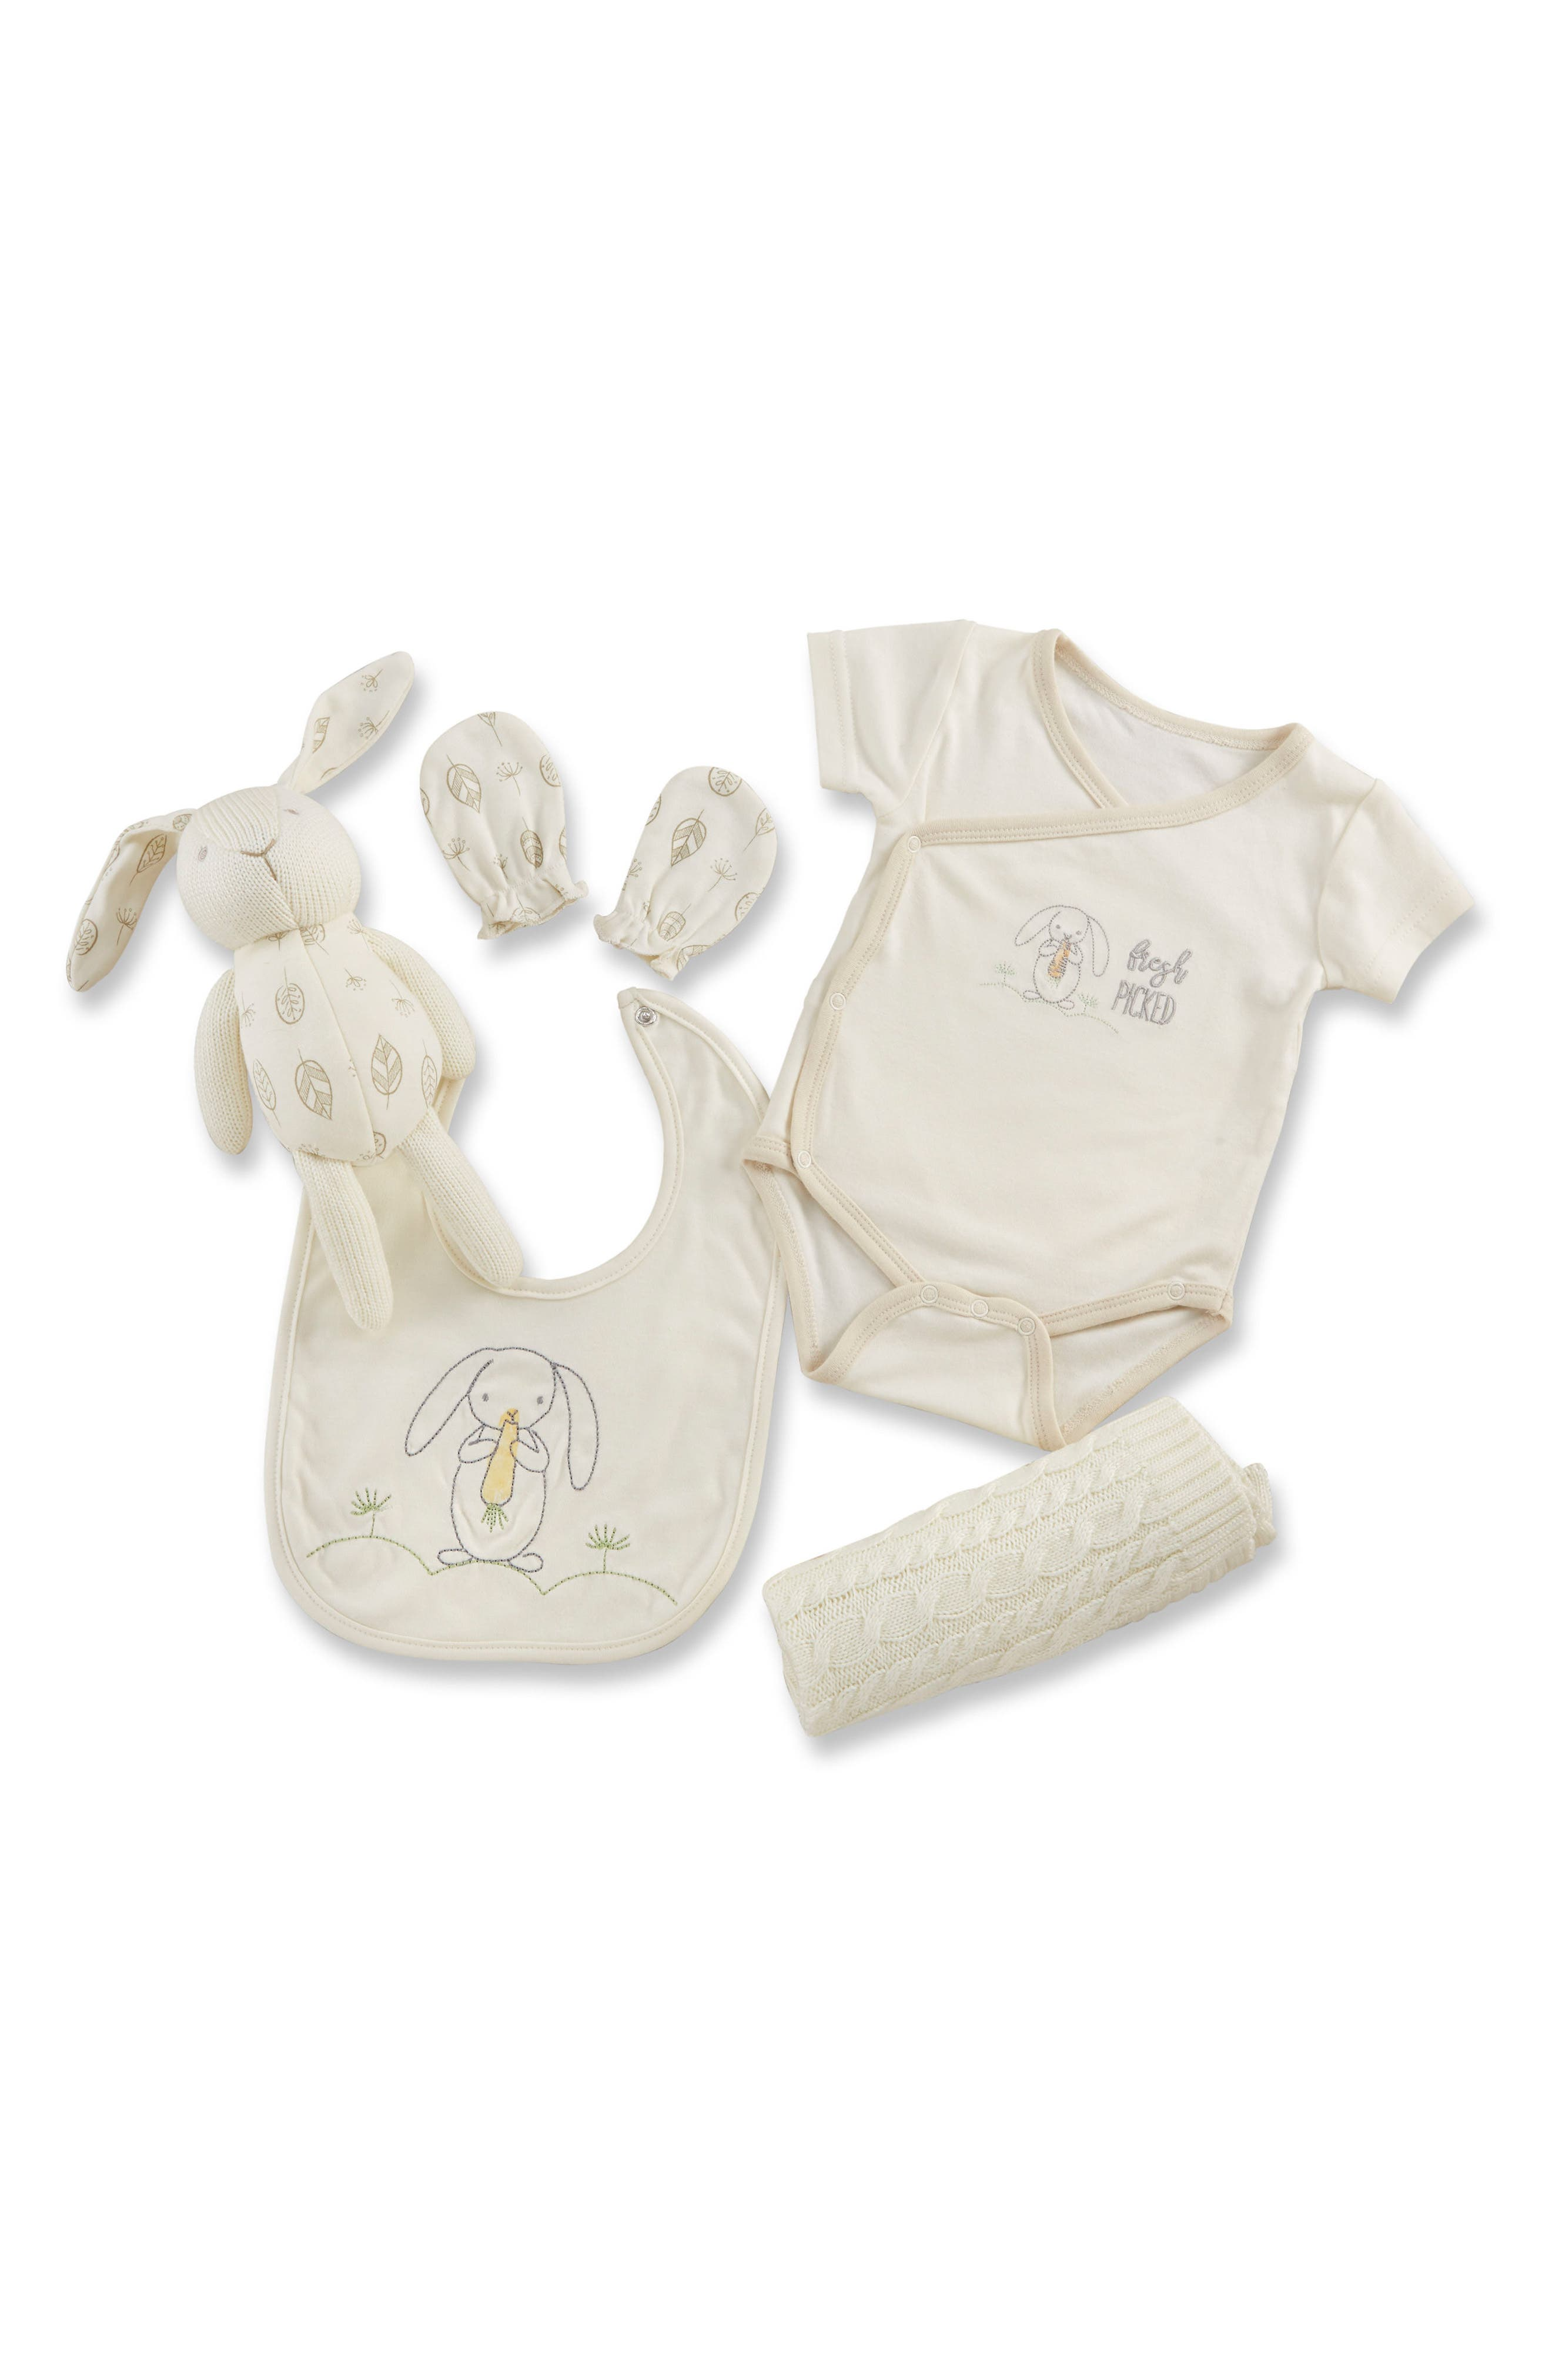 Main Image - Baby Aspen Nature Baby Welcome Home Gift Set (Baby)